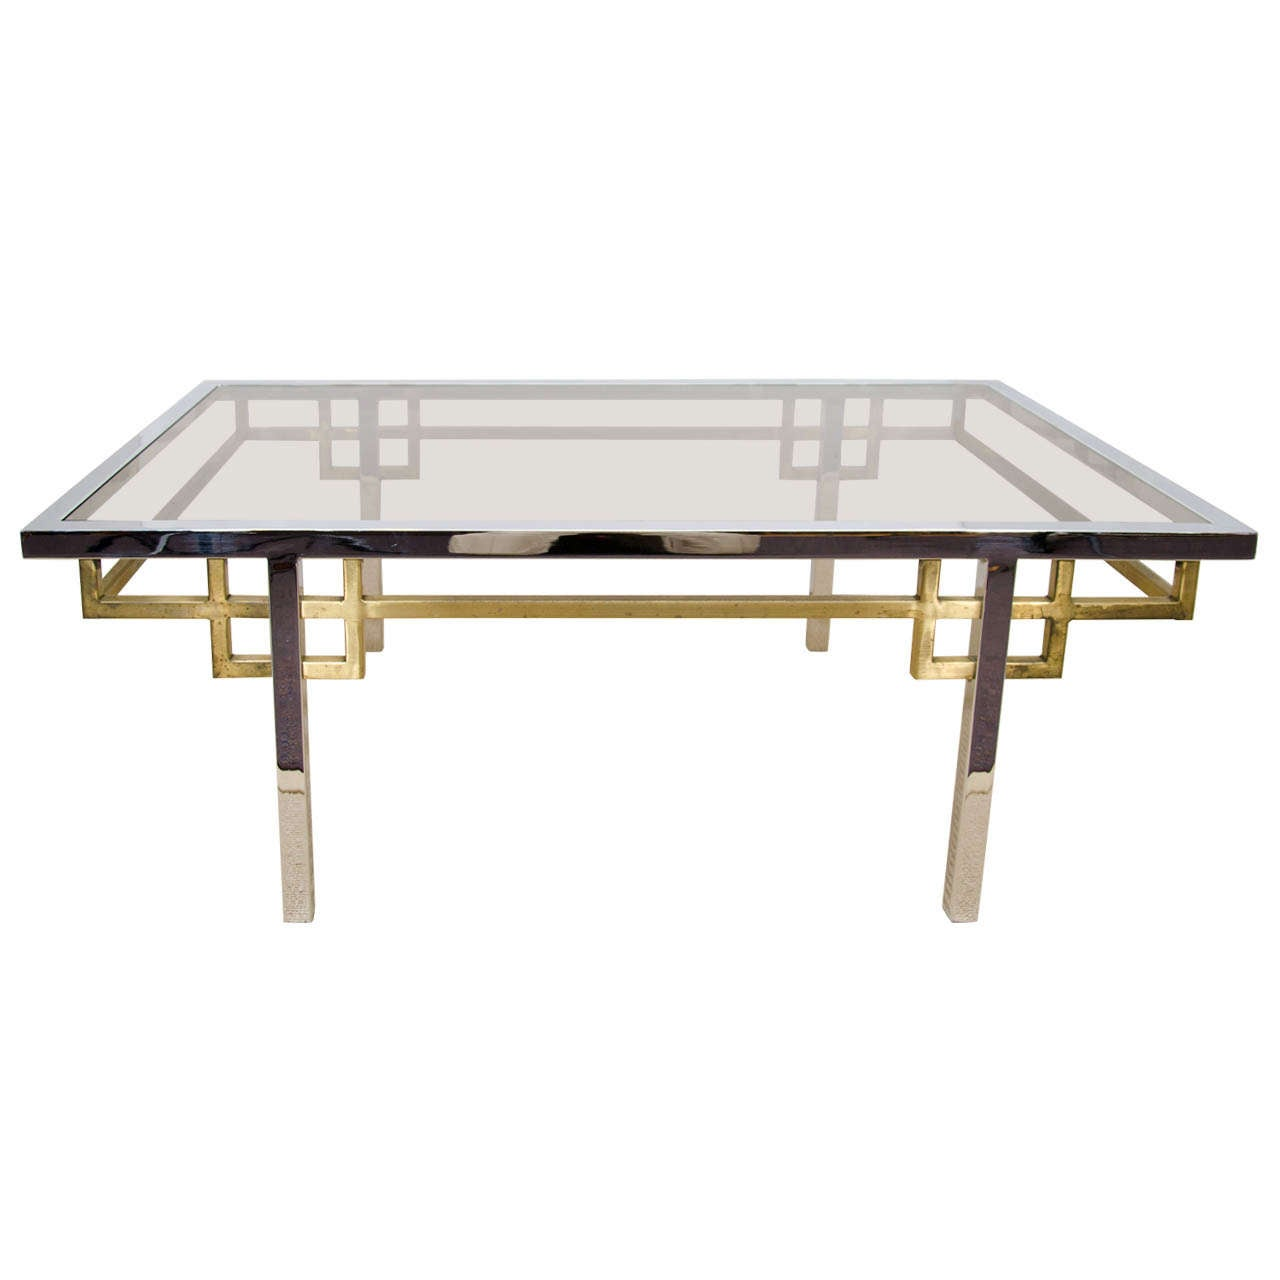 A Mid Century Brass, Chrome, And Glass Coffee Table At 1stdibs